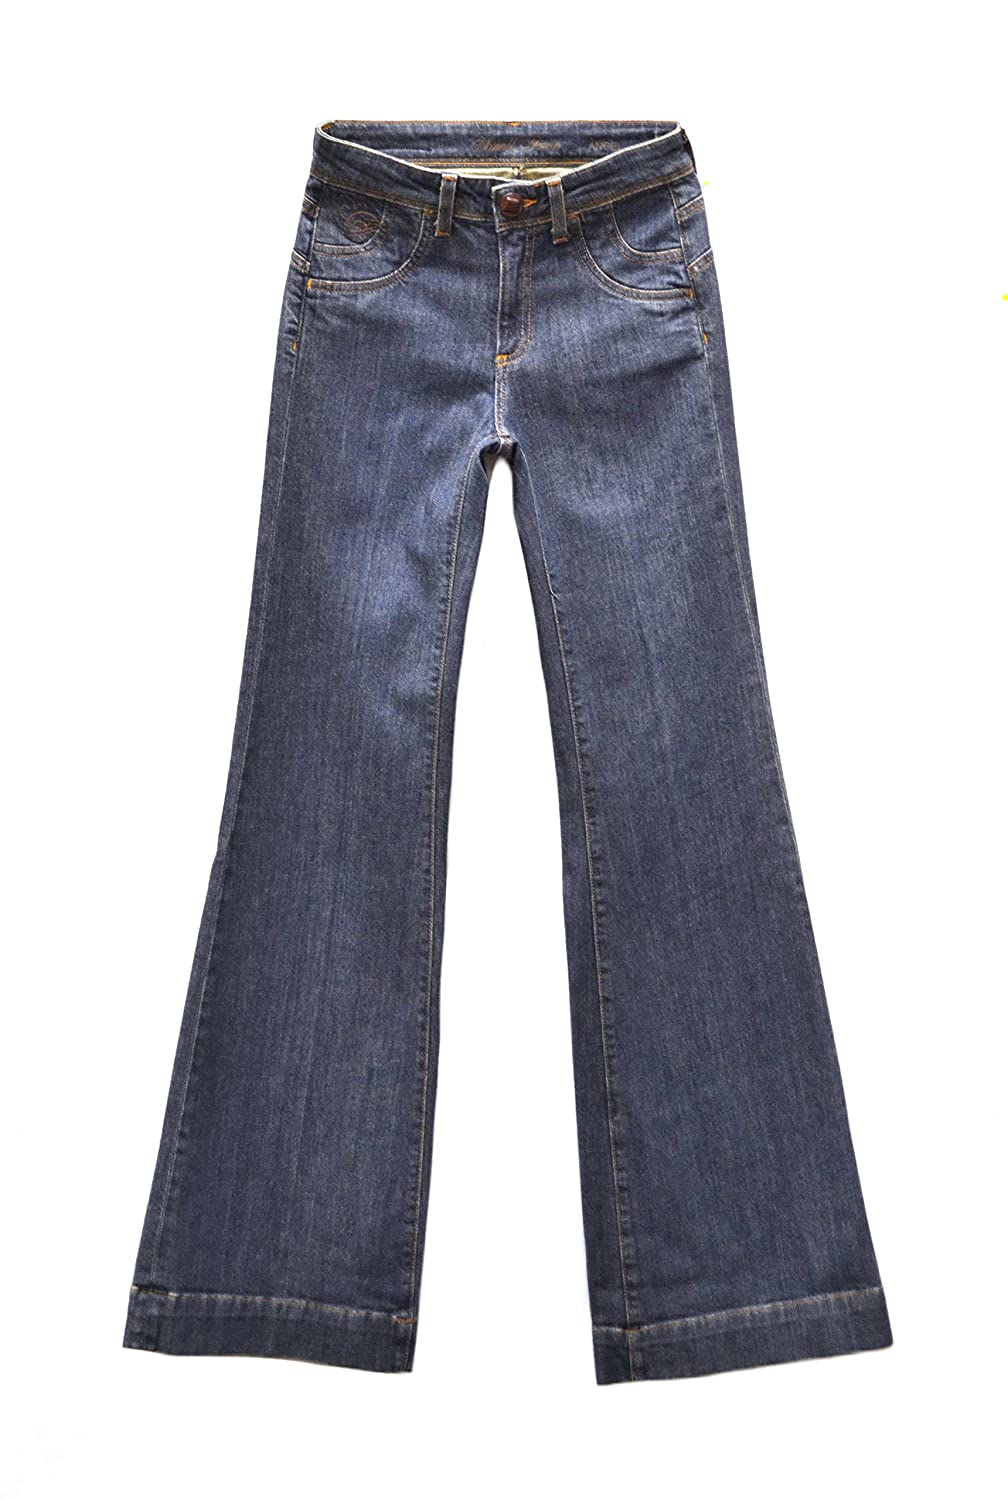 SMALL TOWN Womens Angel High Rise Wide Leg Jeans Dark Wash 160978TAG